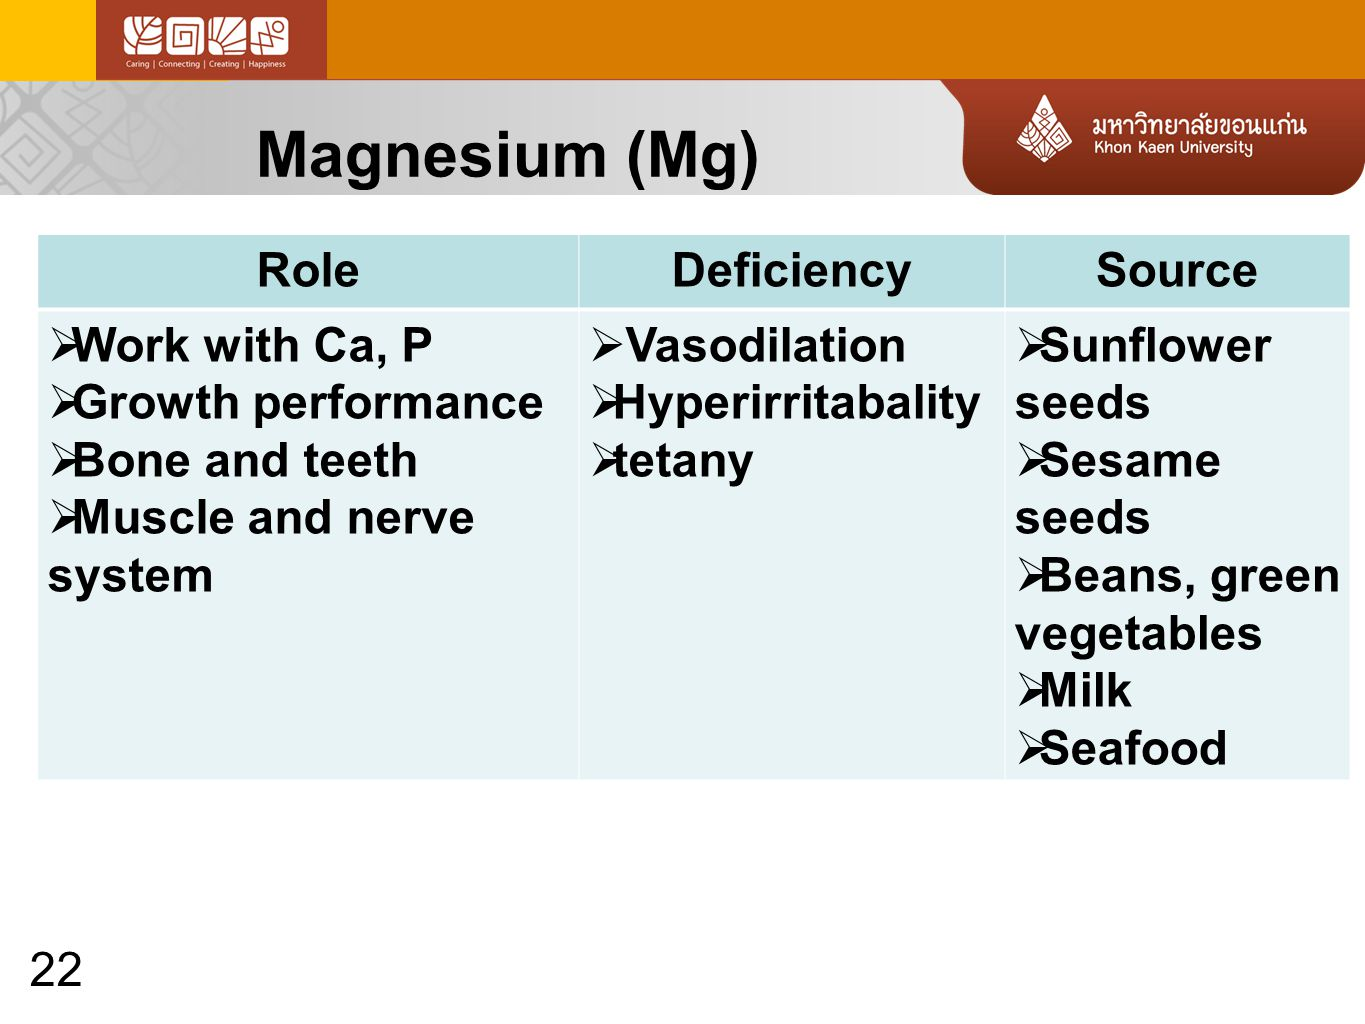 22 Magnesium (Mg) RoleDeficiencySource  Work with Ca, P  Growth performance  Bone and teeth  Muscle and nerve system  Vasodilation  Hyperirritabality  tetany  Sunflower seeds  Sesame seeds  Beans, green vegetables  Milk  Seafood